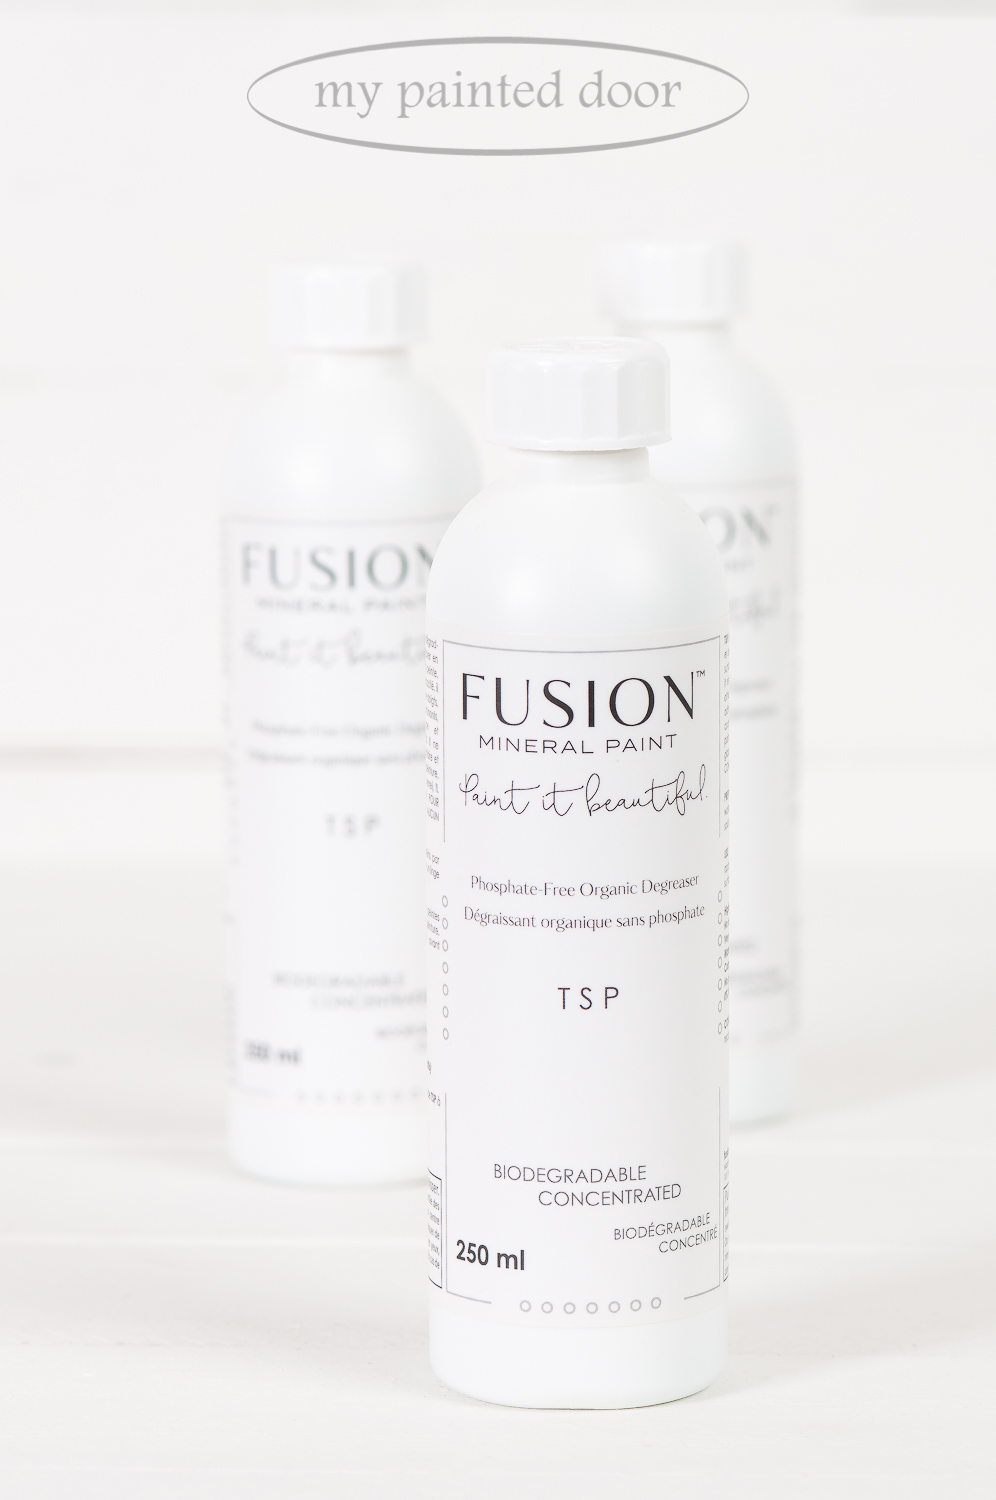 Fusion Mineral Paint TSP available online at My Painted Door. Fusion TSP is a biodegradable, phosphate-free and organic degreaser.